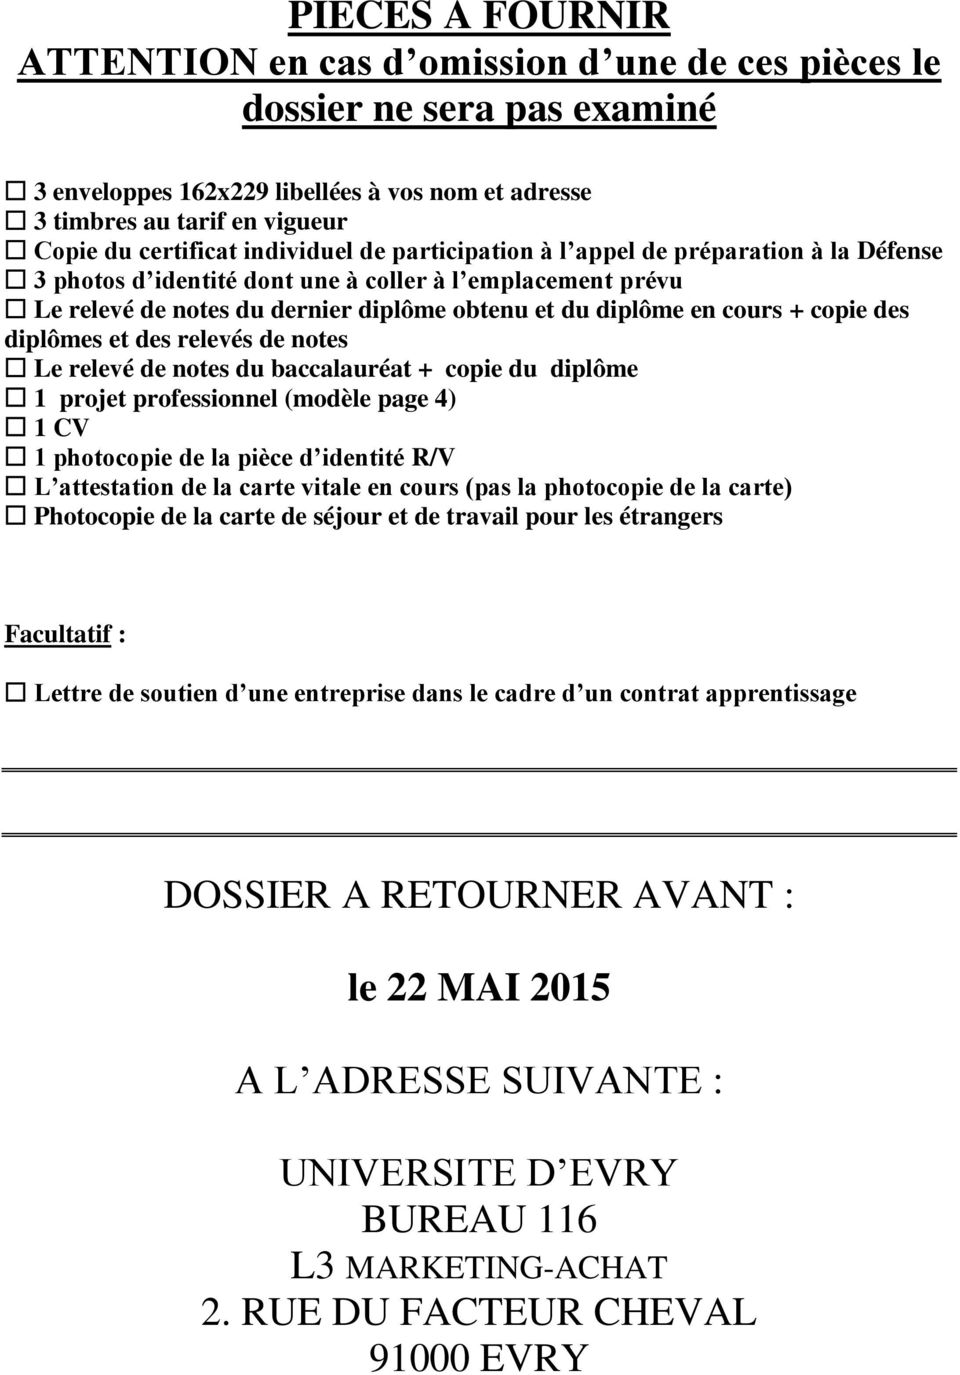 licence 3  u00e8me ann u00e9e marketing  achat mention   economie et